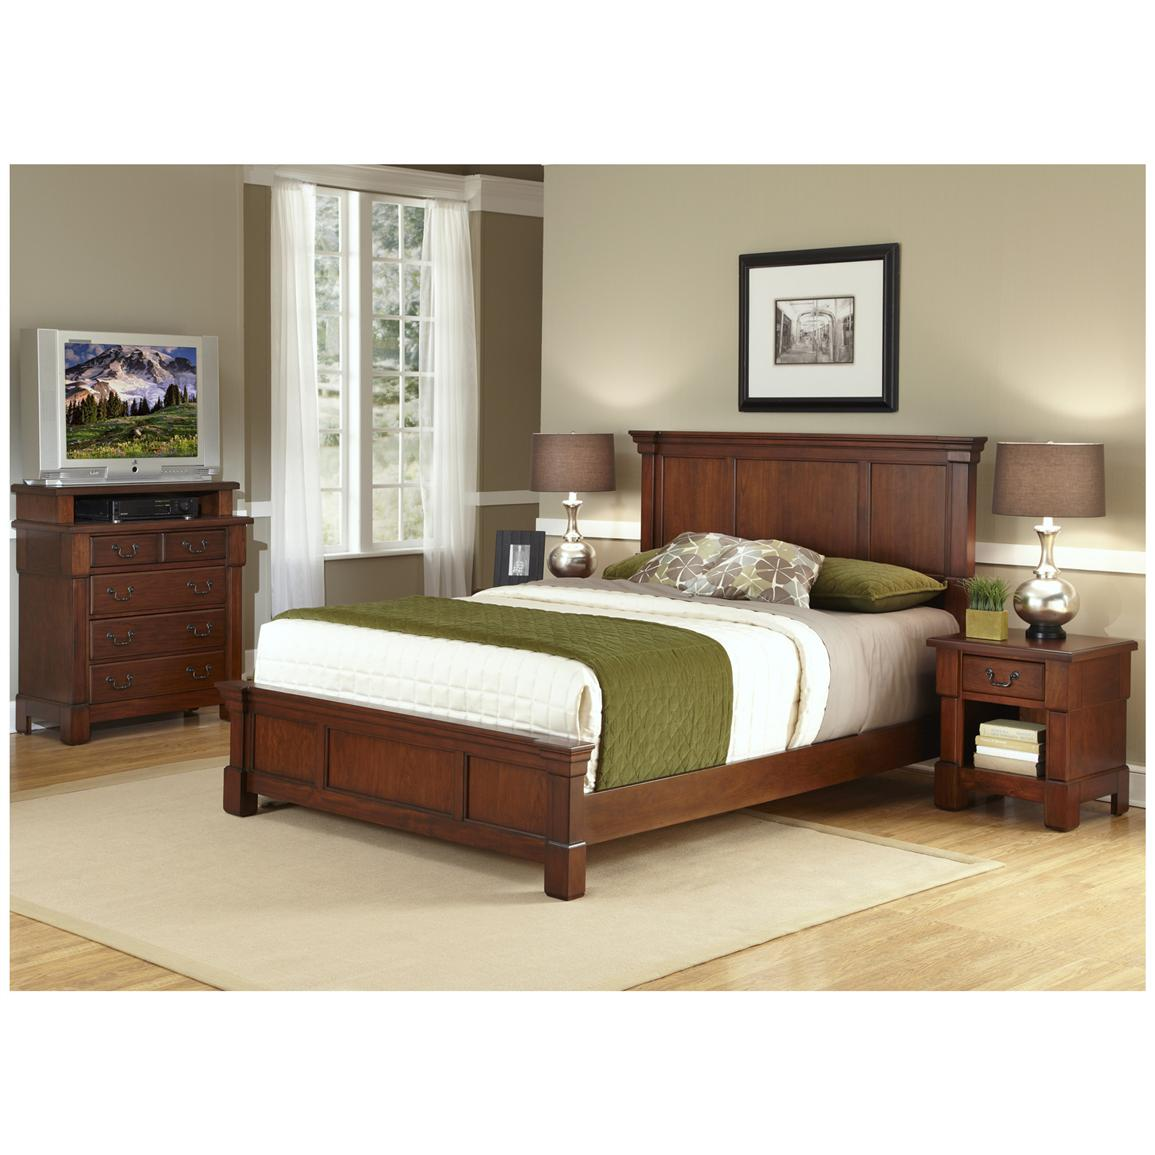 The Aspen Collection King / California King Headboard, Media Chest and Night Stand